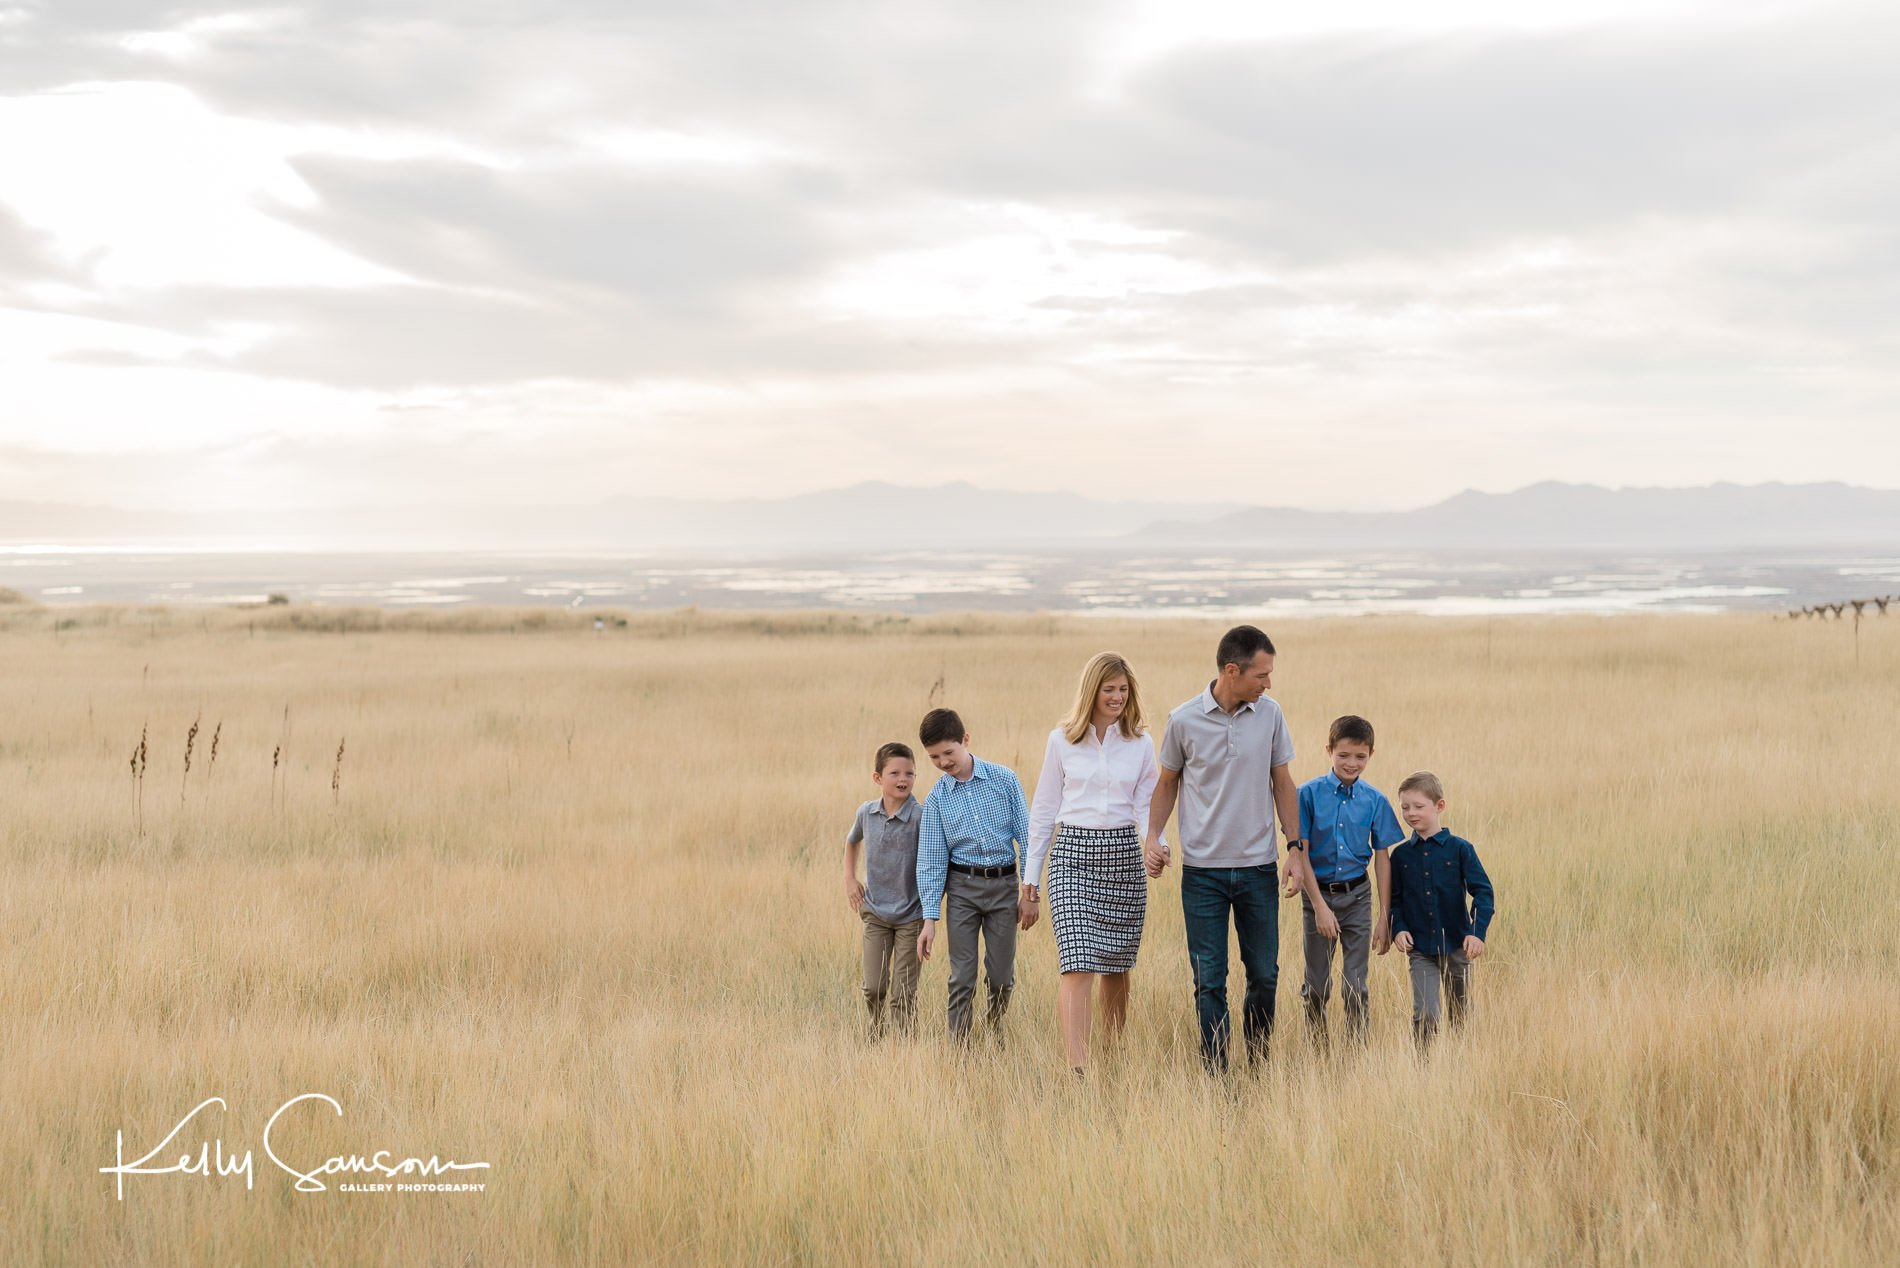 Family holding hands walking through grass with view of valley below for bountiful family photography.